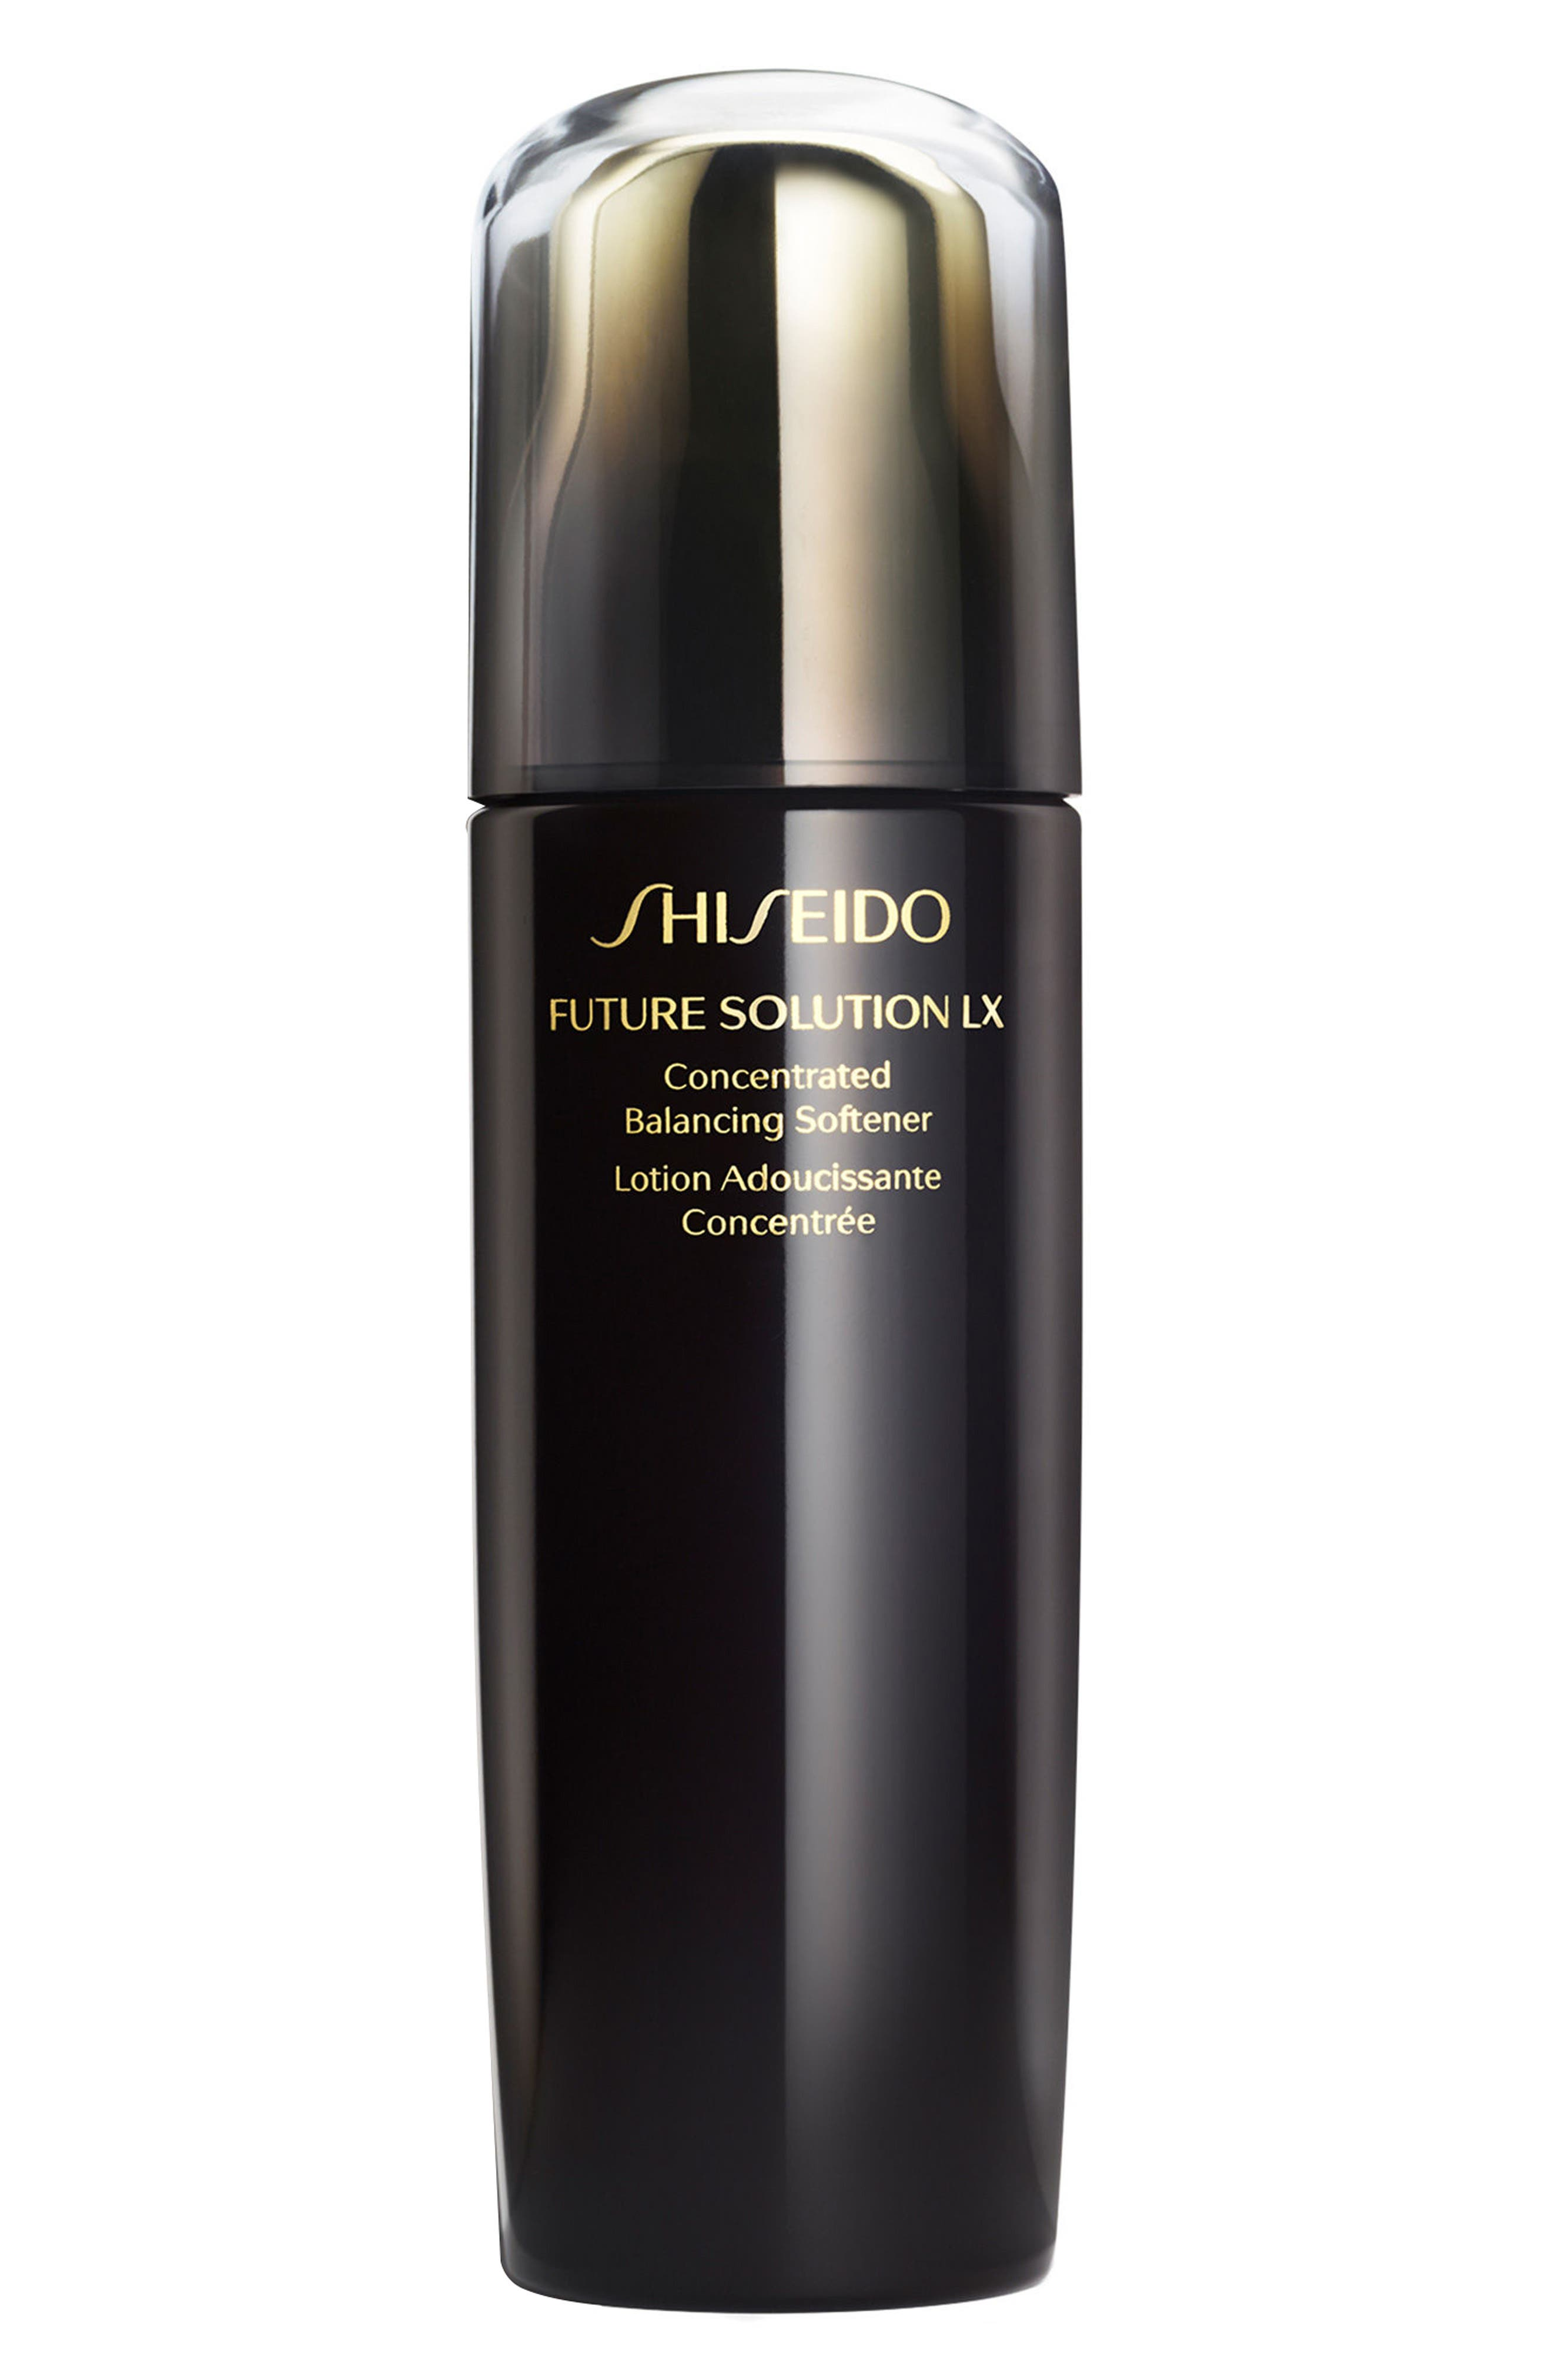 Shiseido Future Solution LX Concentrated Balancing Softener (Nordstrom Exclusive)